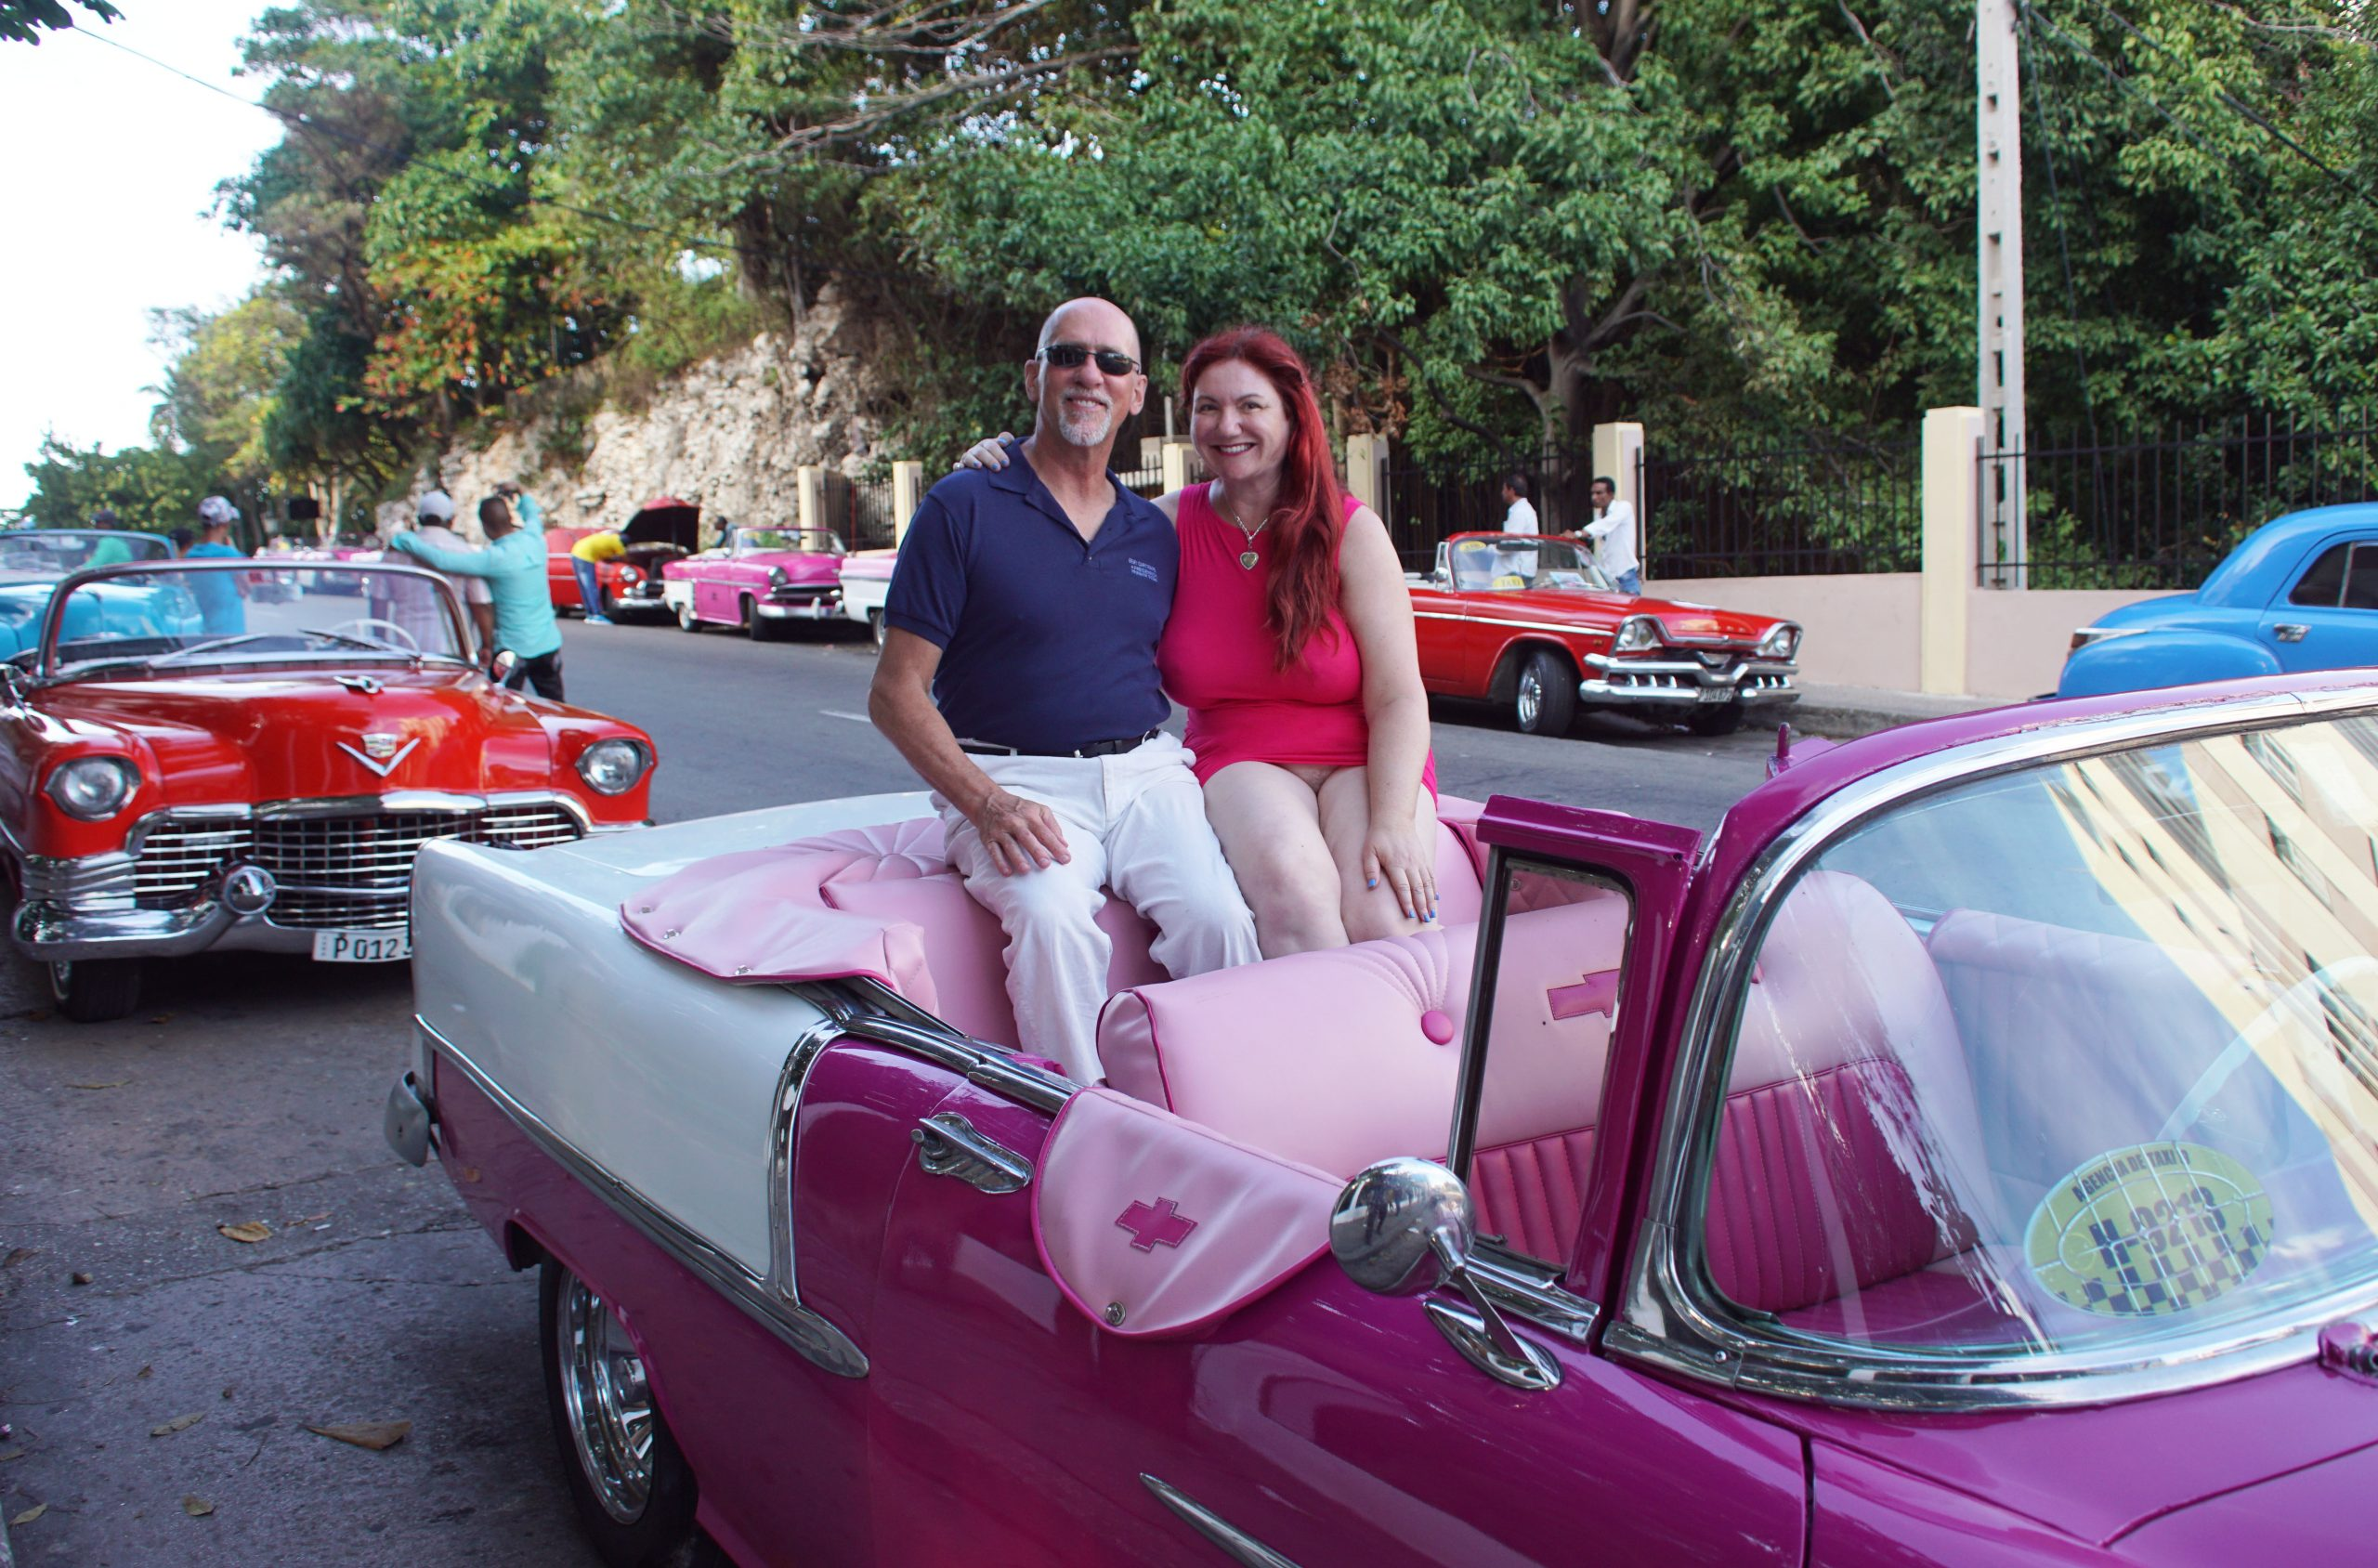 Ready to ride in our pink classic 1955 Chevy convertible!